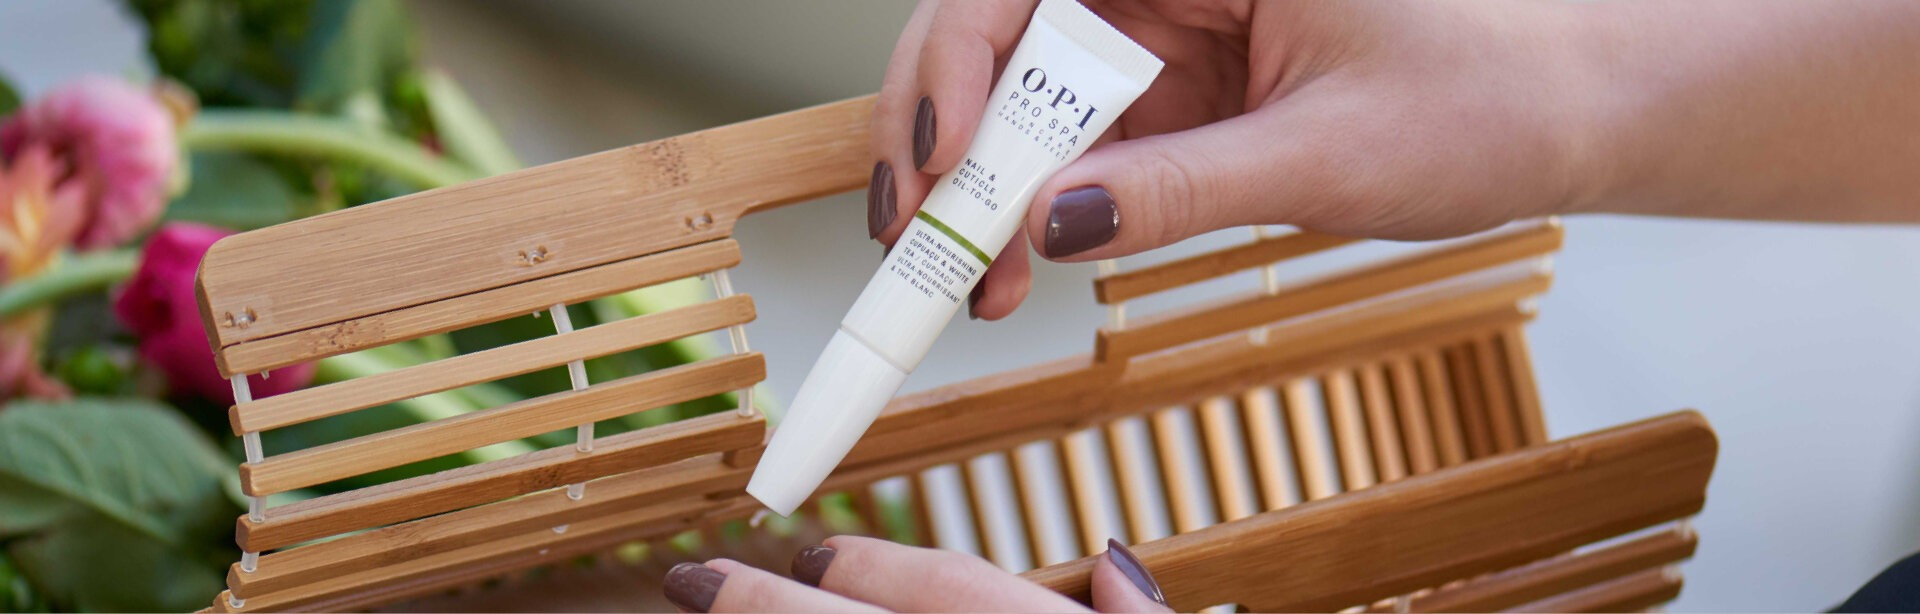 OPI skincare hands and feet